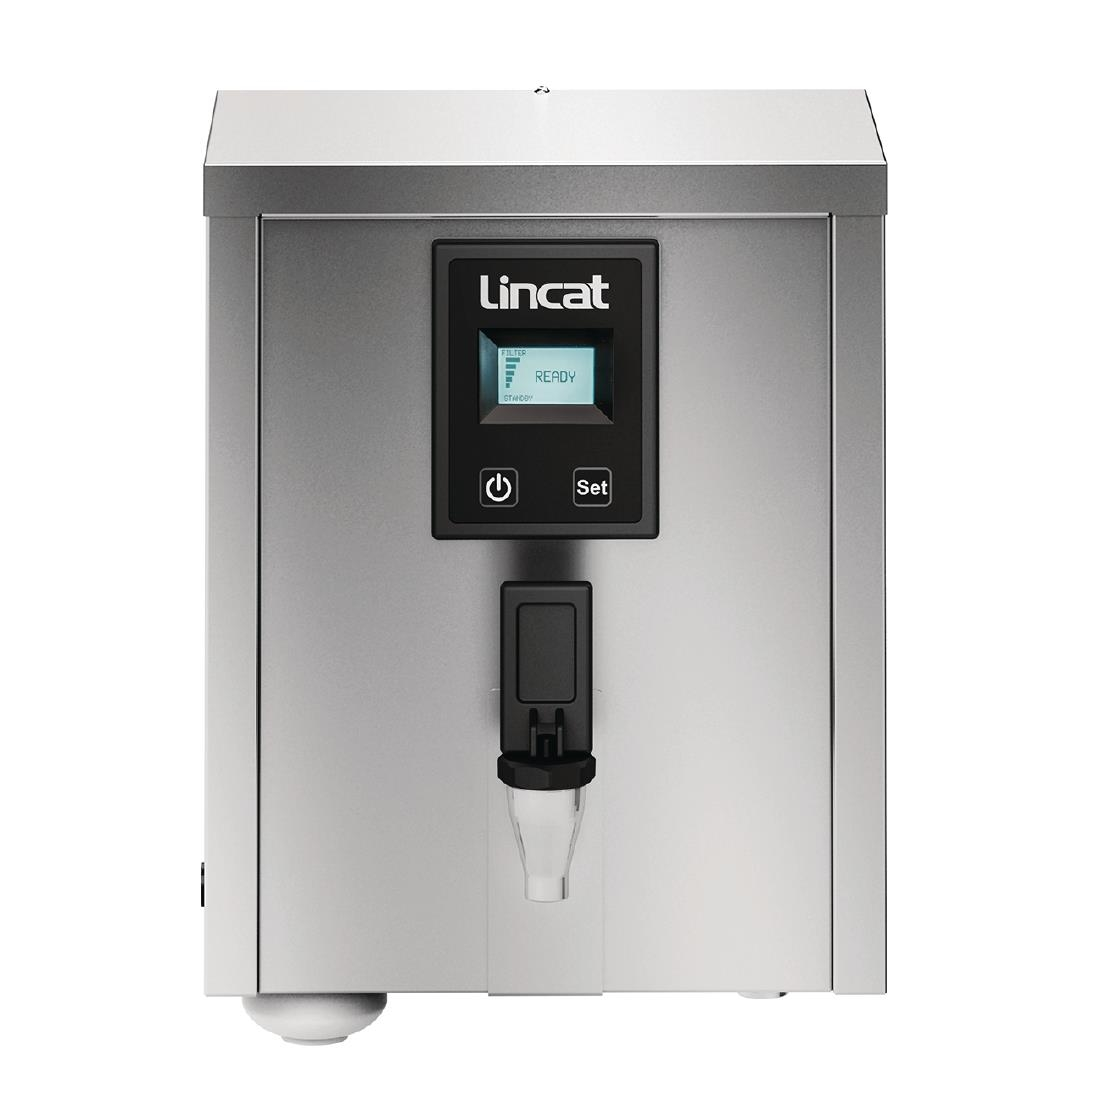 Lincat 3Ltr Wall Mounted Auto Fill Water Boiler with Filtration M3F